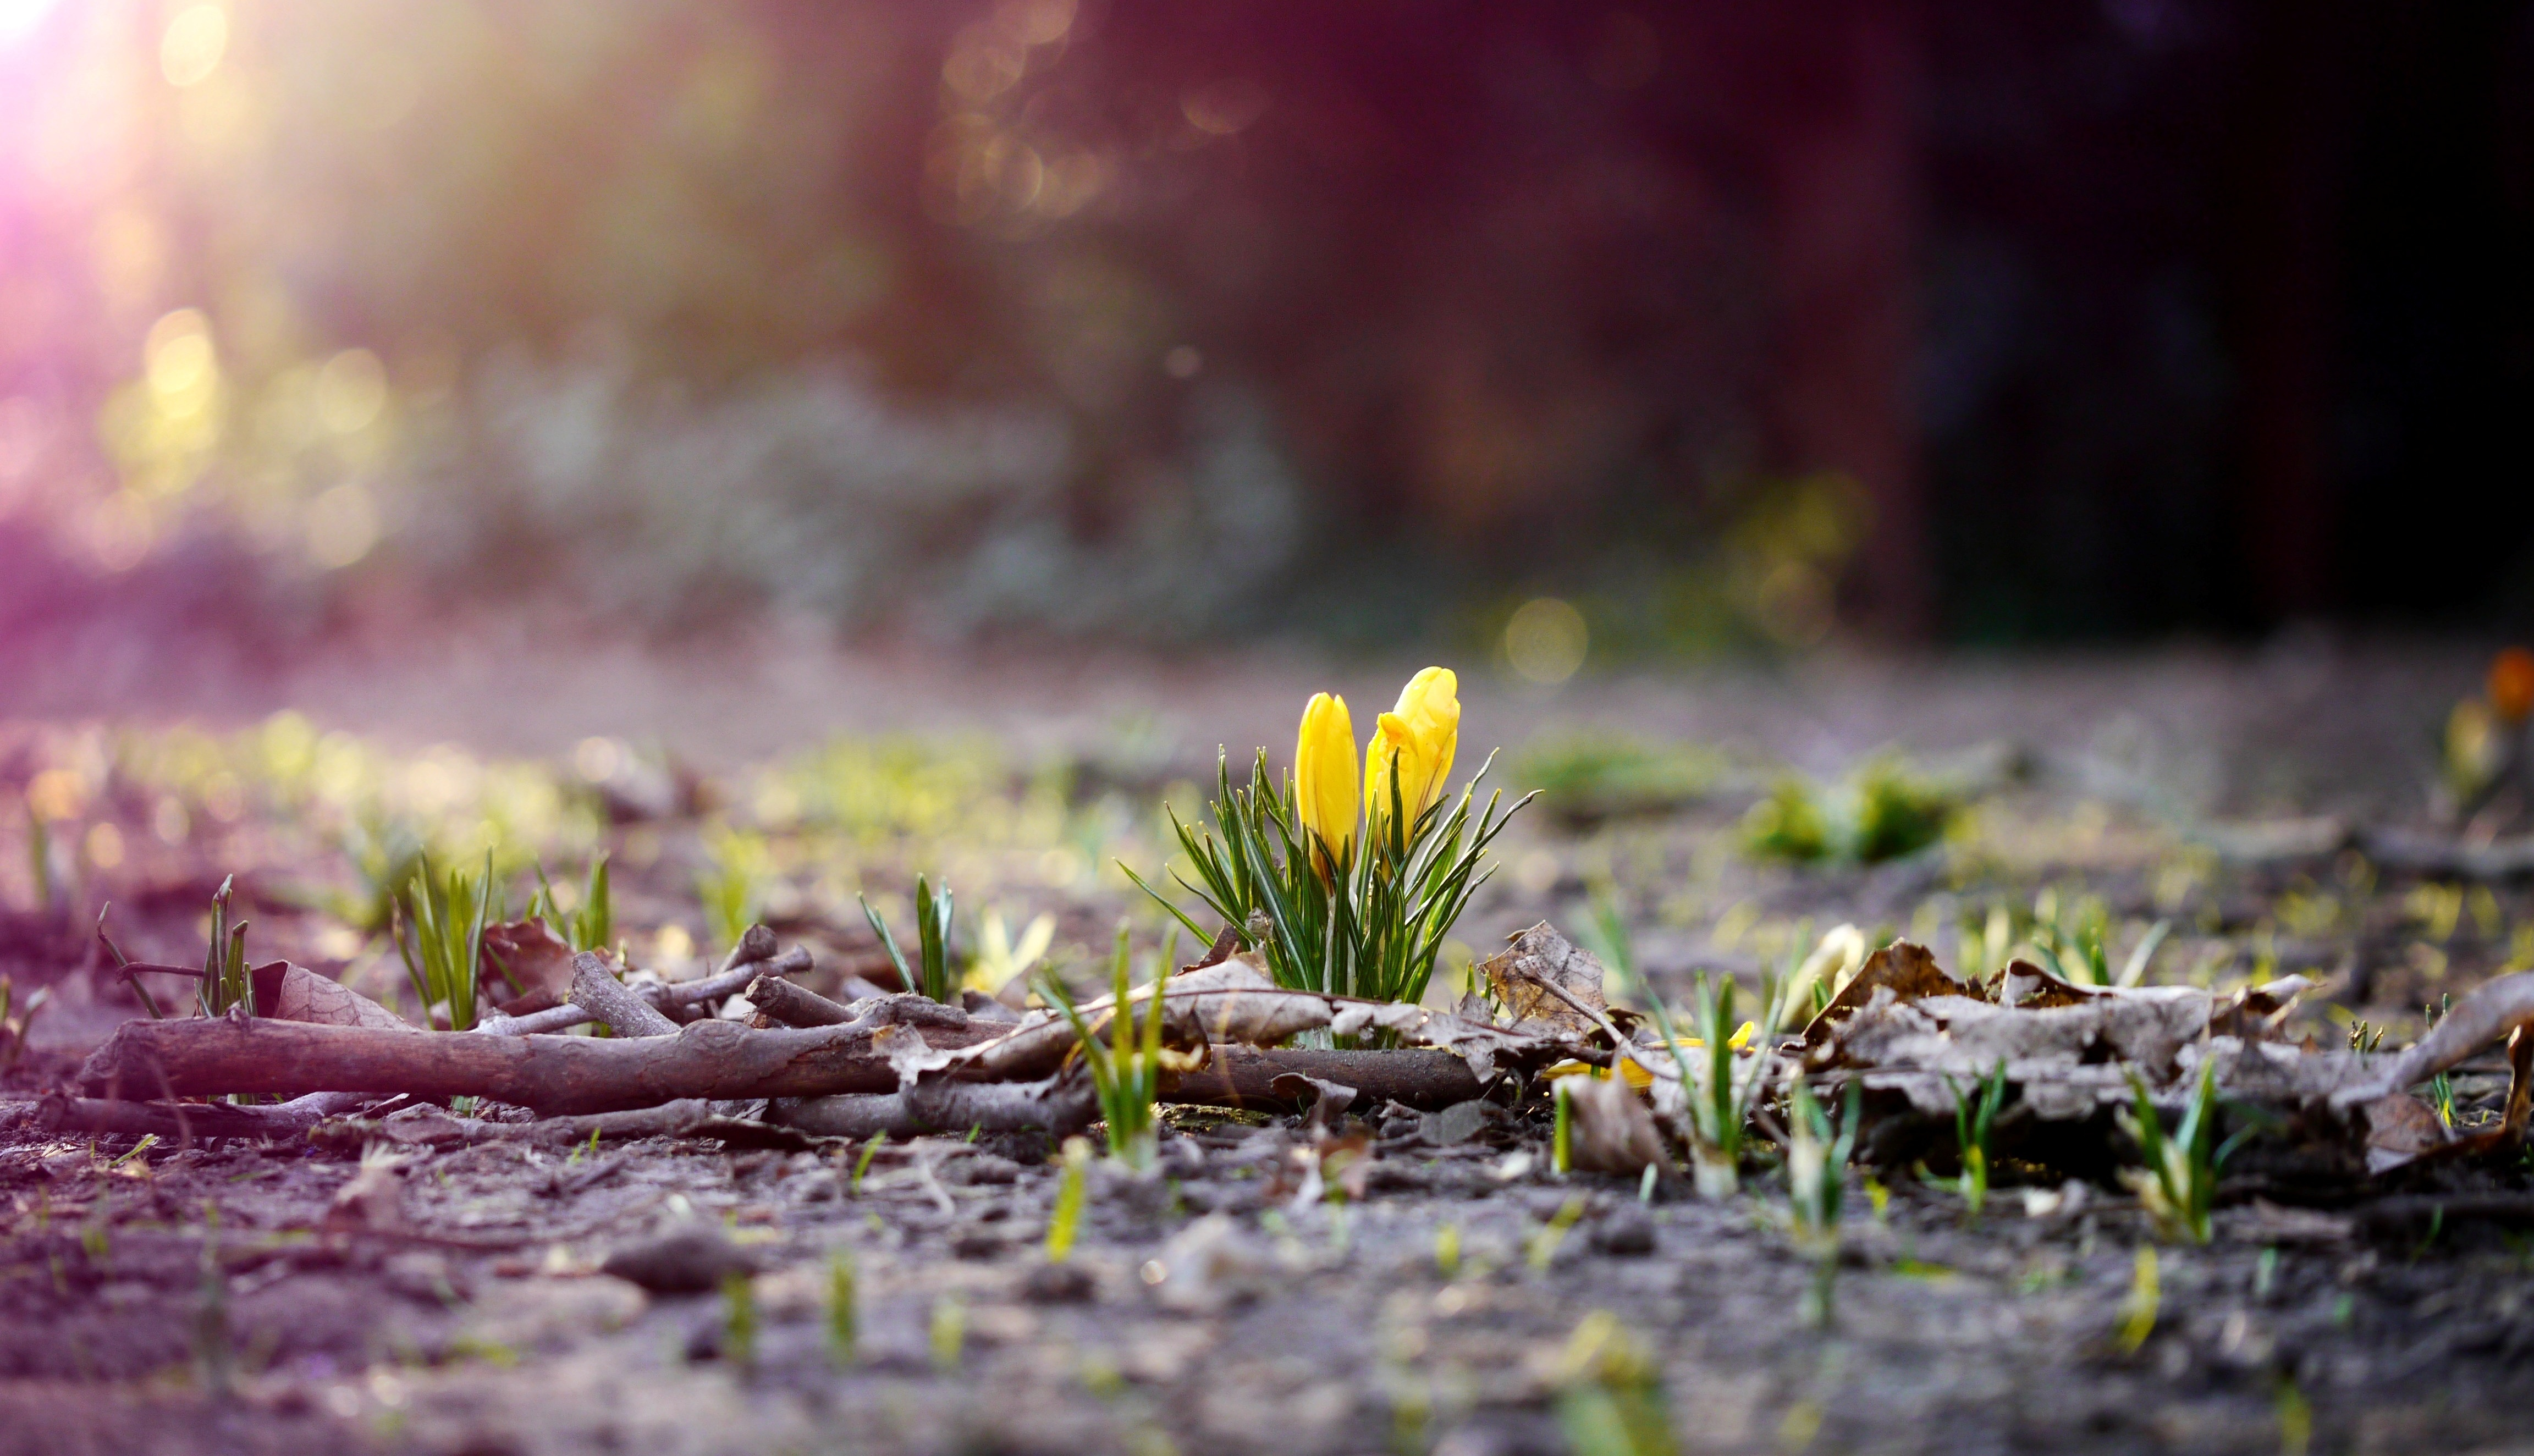 early spring images - HD4608×2648